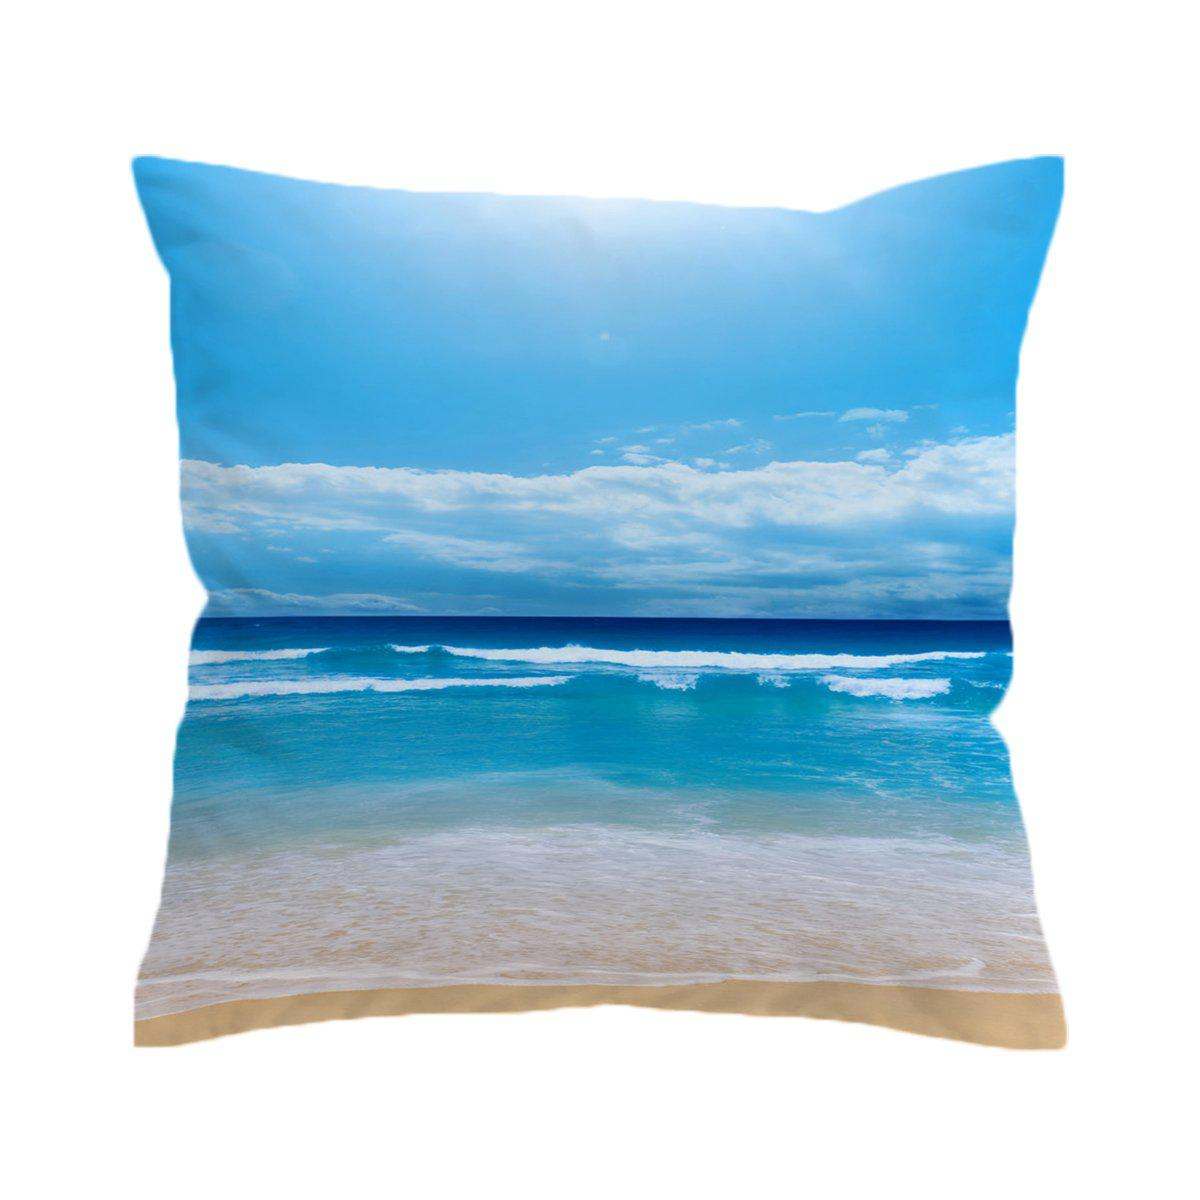 Peace of the Beach Pillow Cover